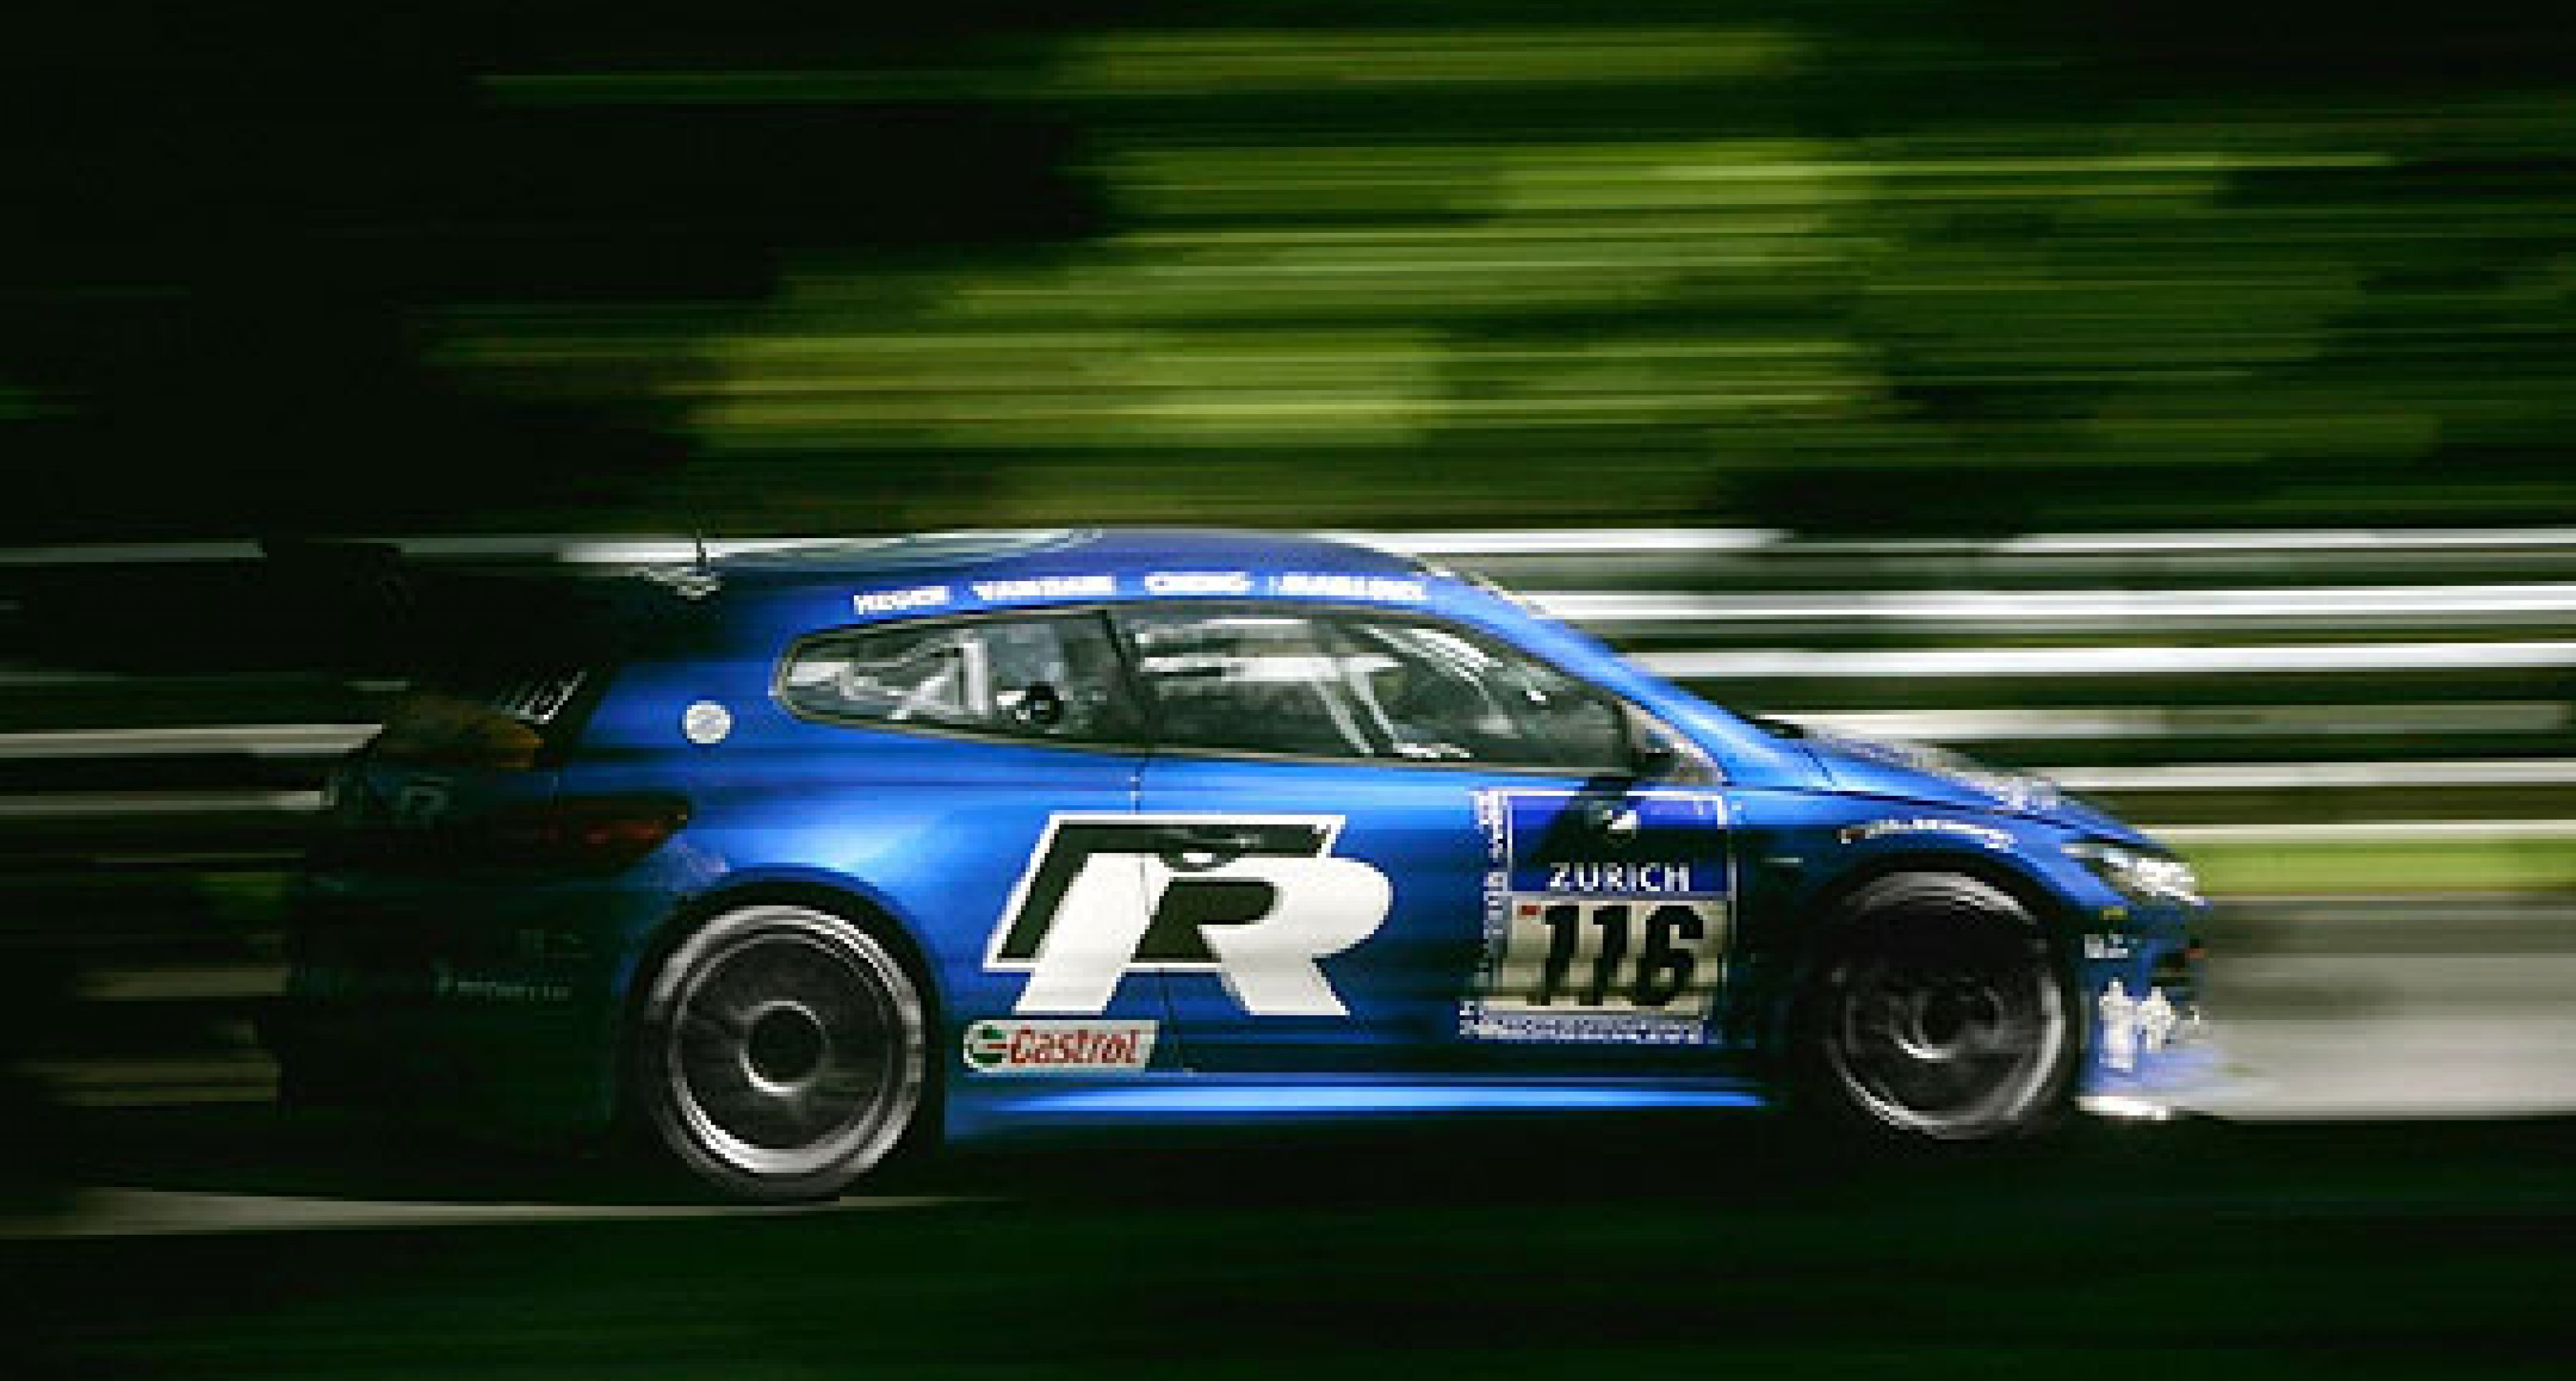 Volkswagen Scirocco R: Successful Race Debut at the 'Ring